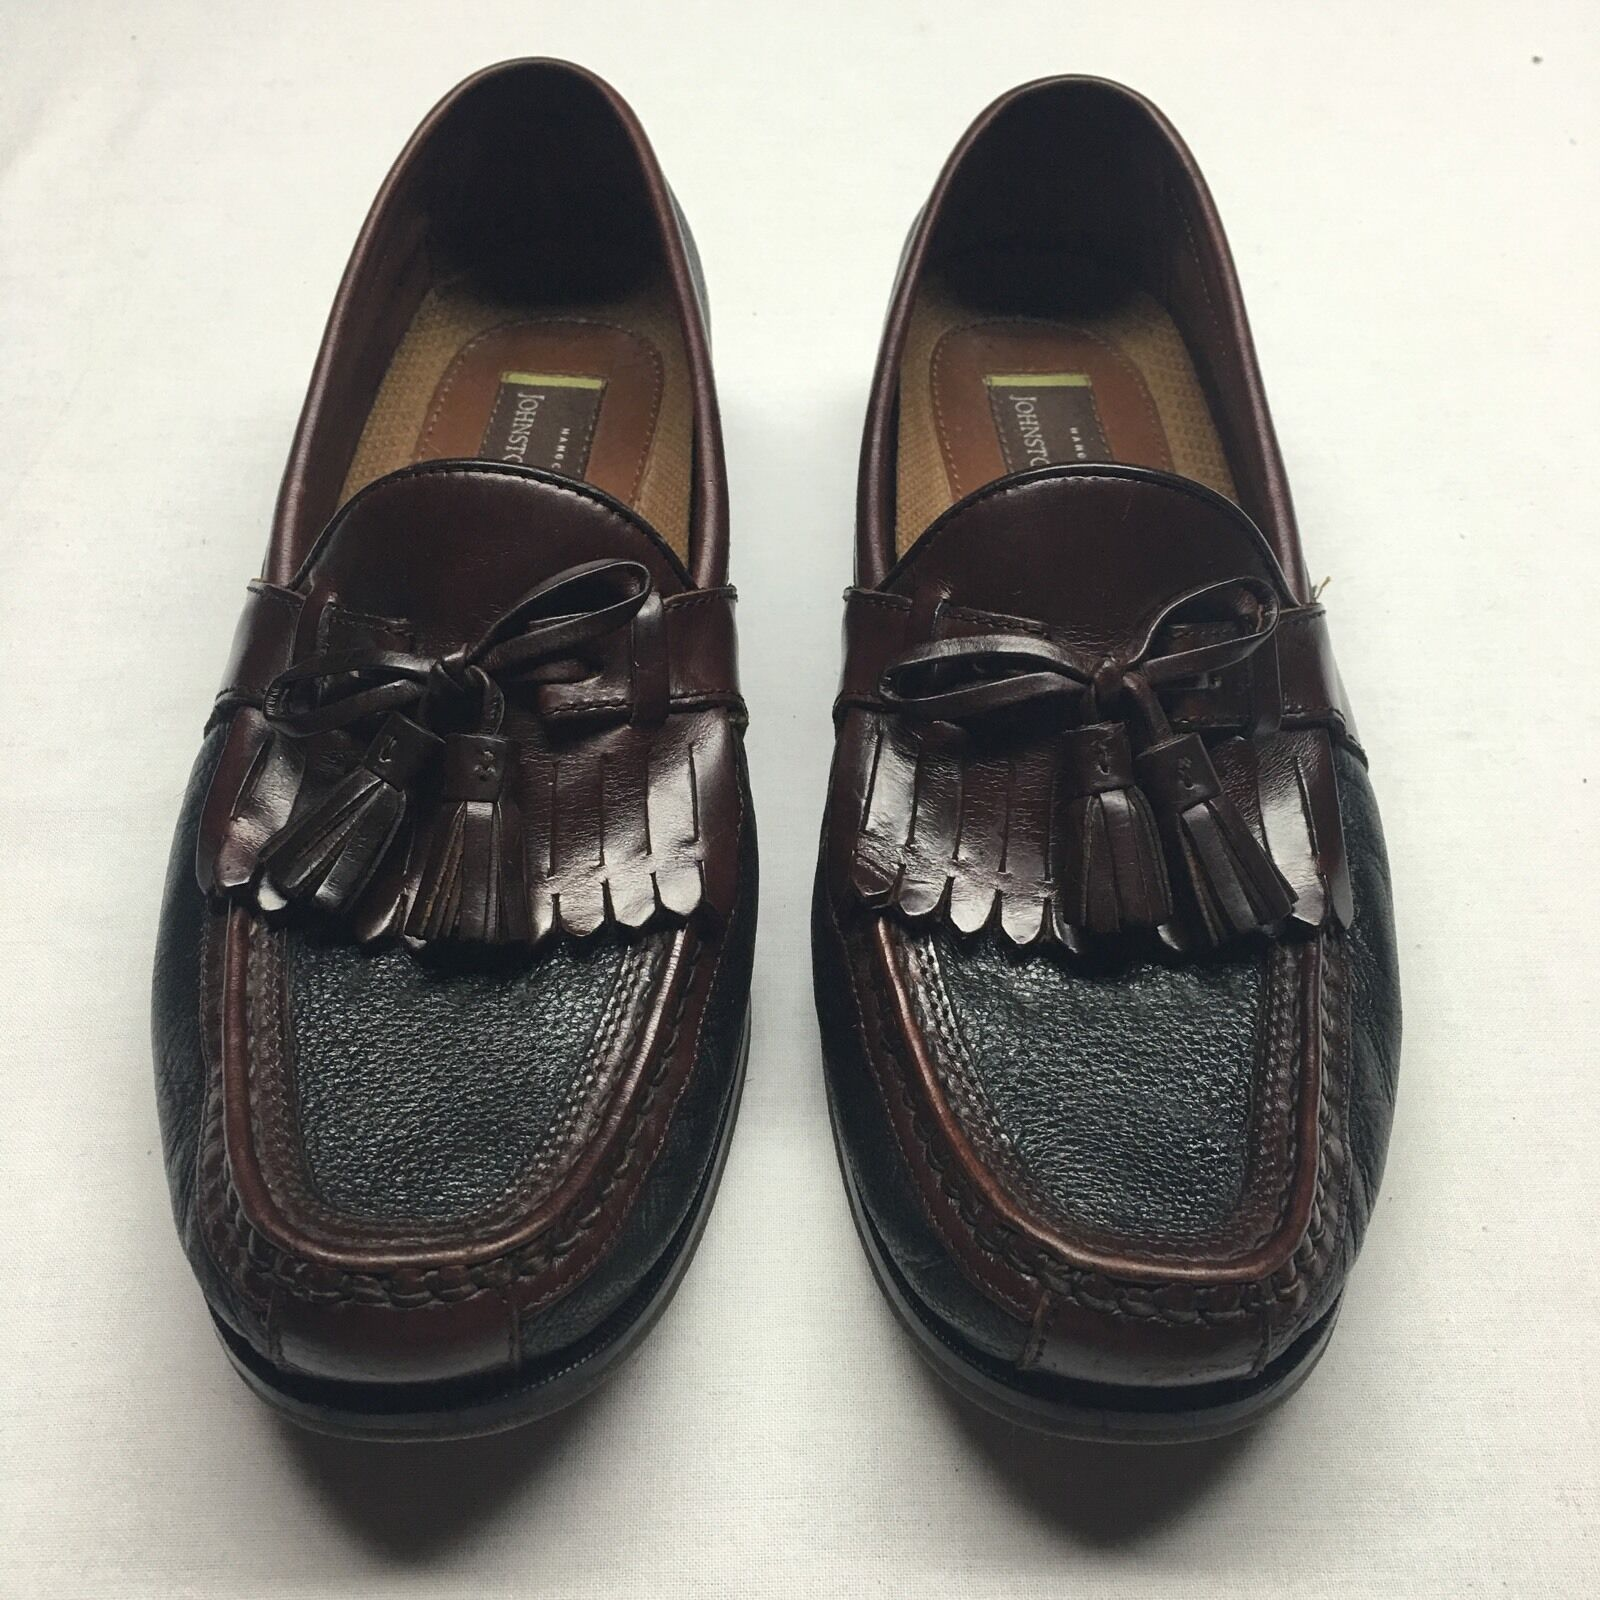 Johnston & Murphy Men's Leather Dress Loafers 8.5